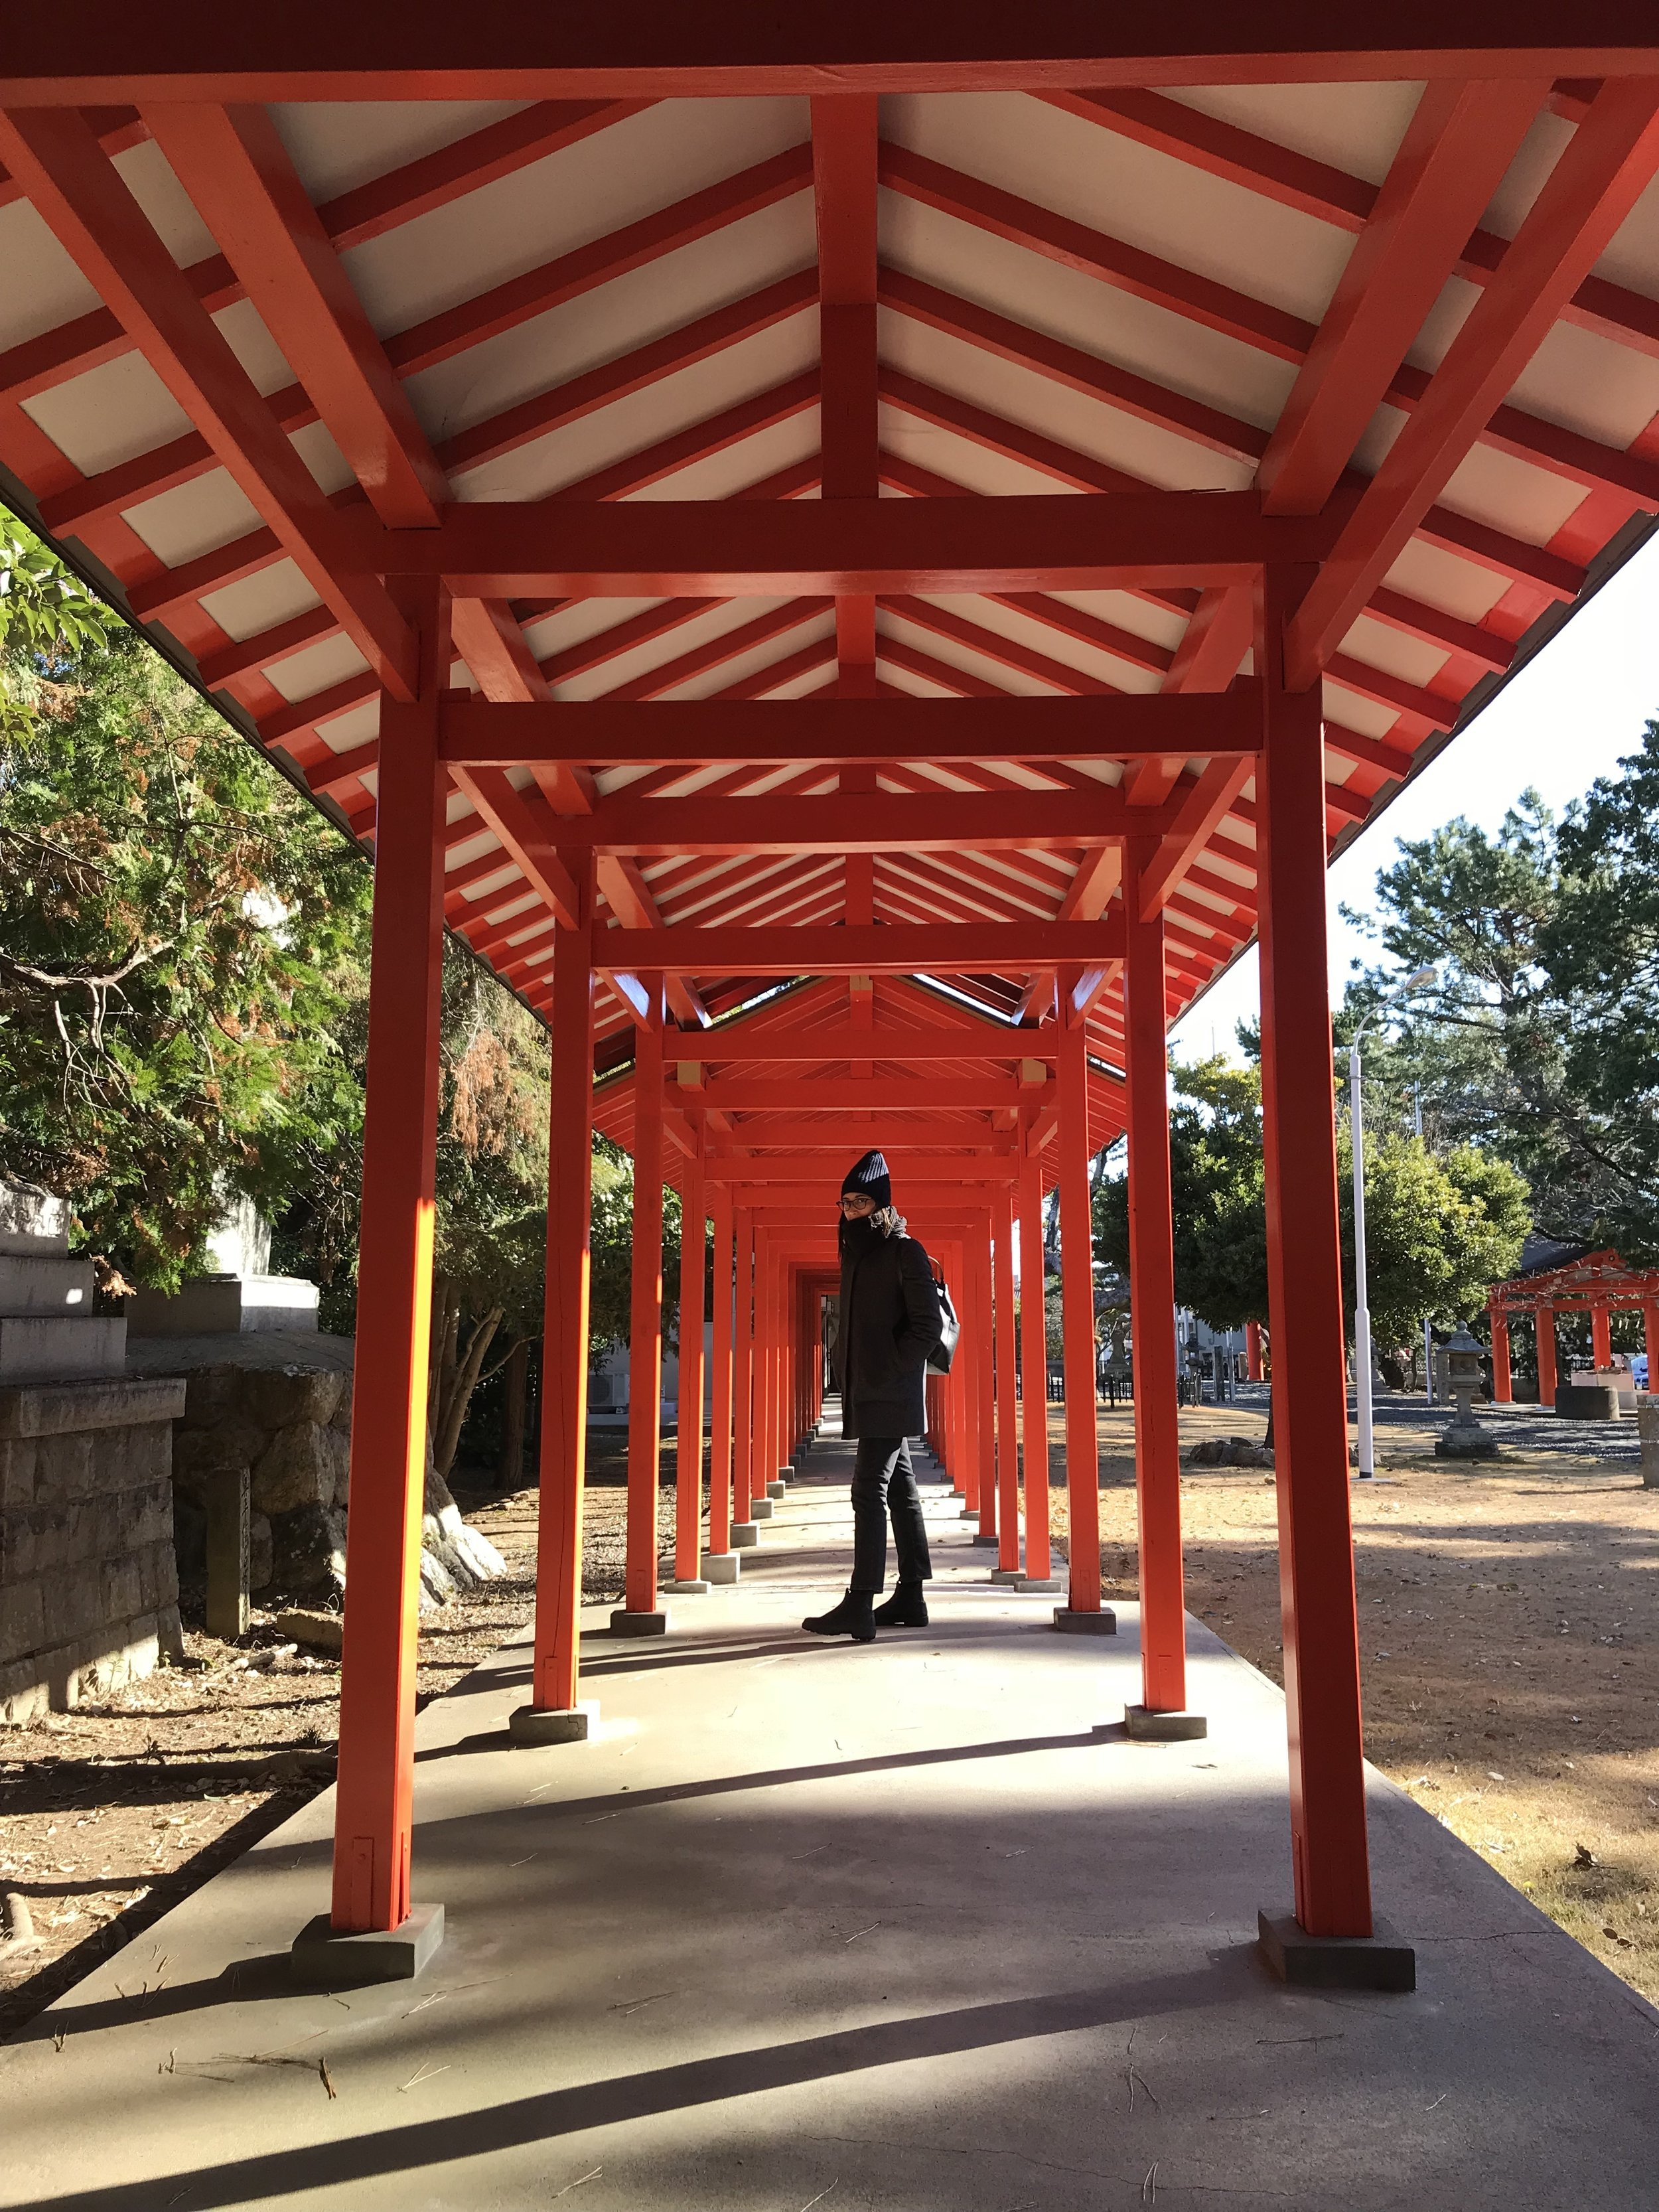 Katie's architecture inspiration at Shinto Shrine in Hamamatsu, Japan.